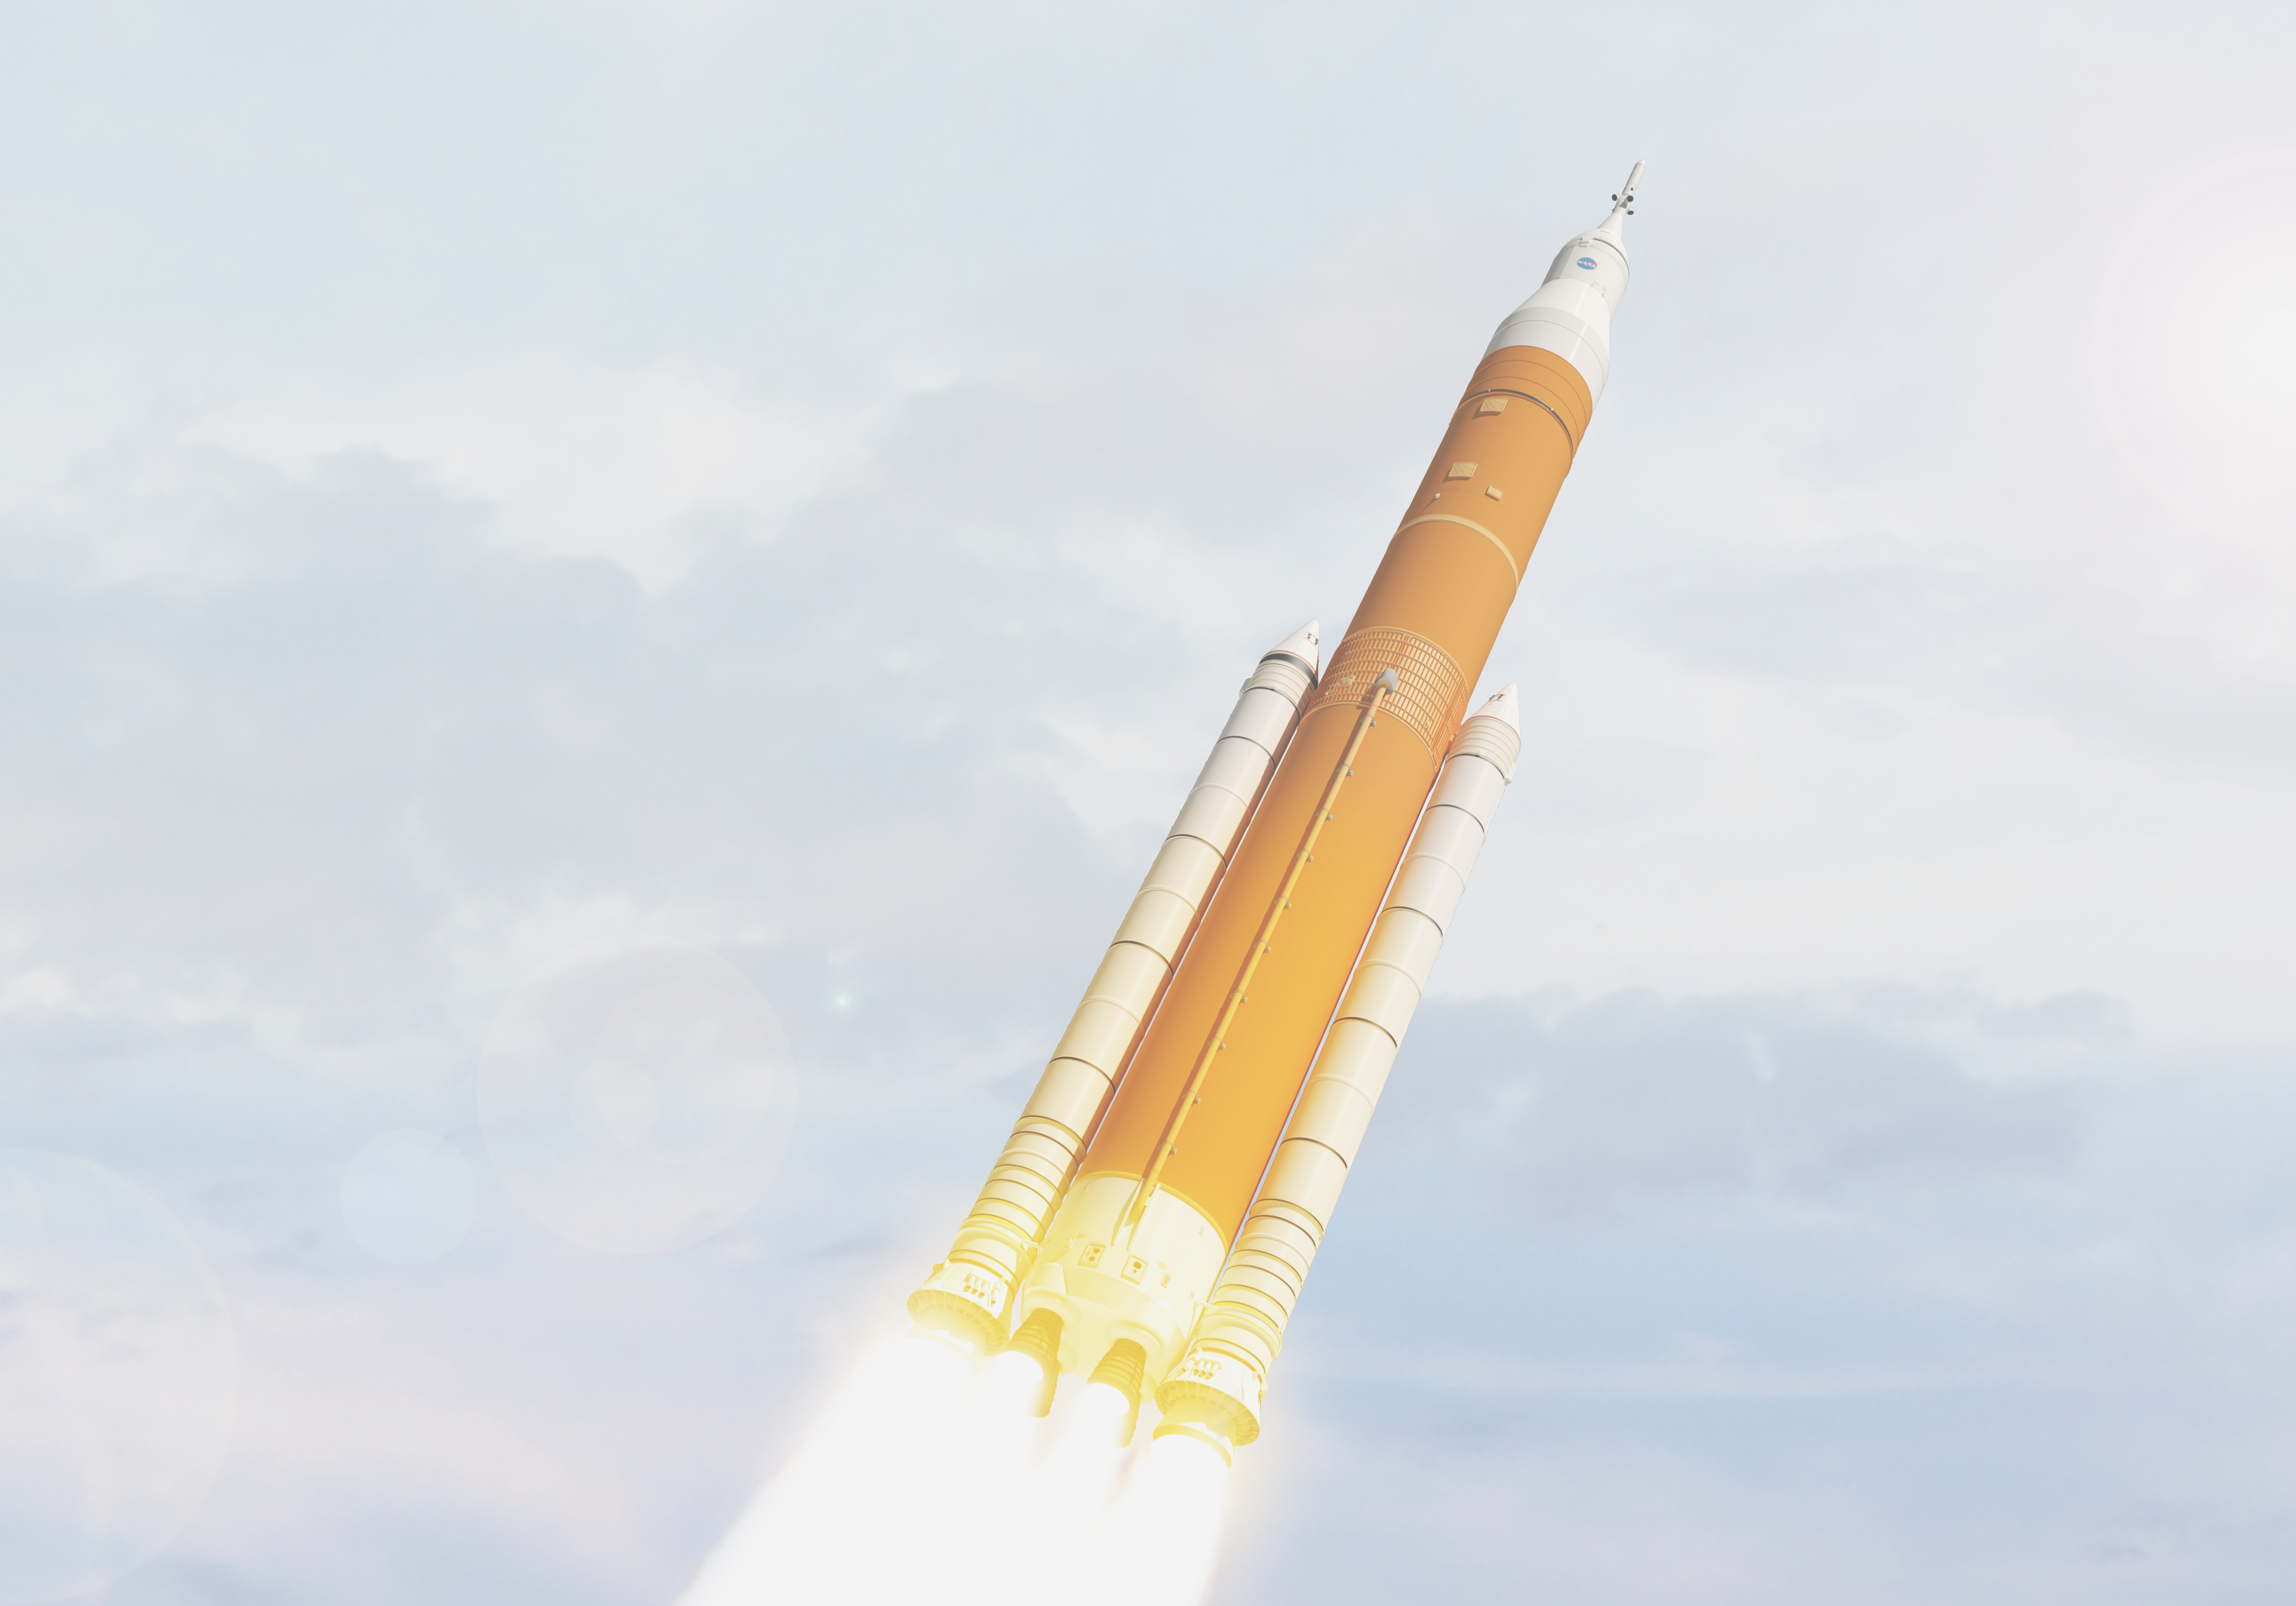 digest | NASA's Next Giant Leap: the future of space